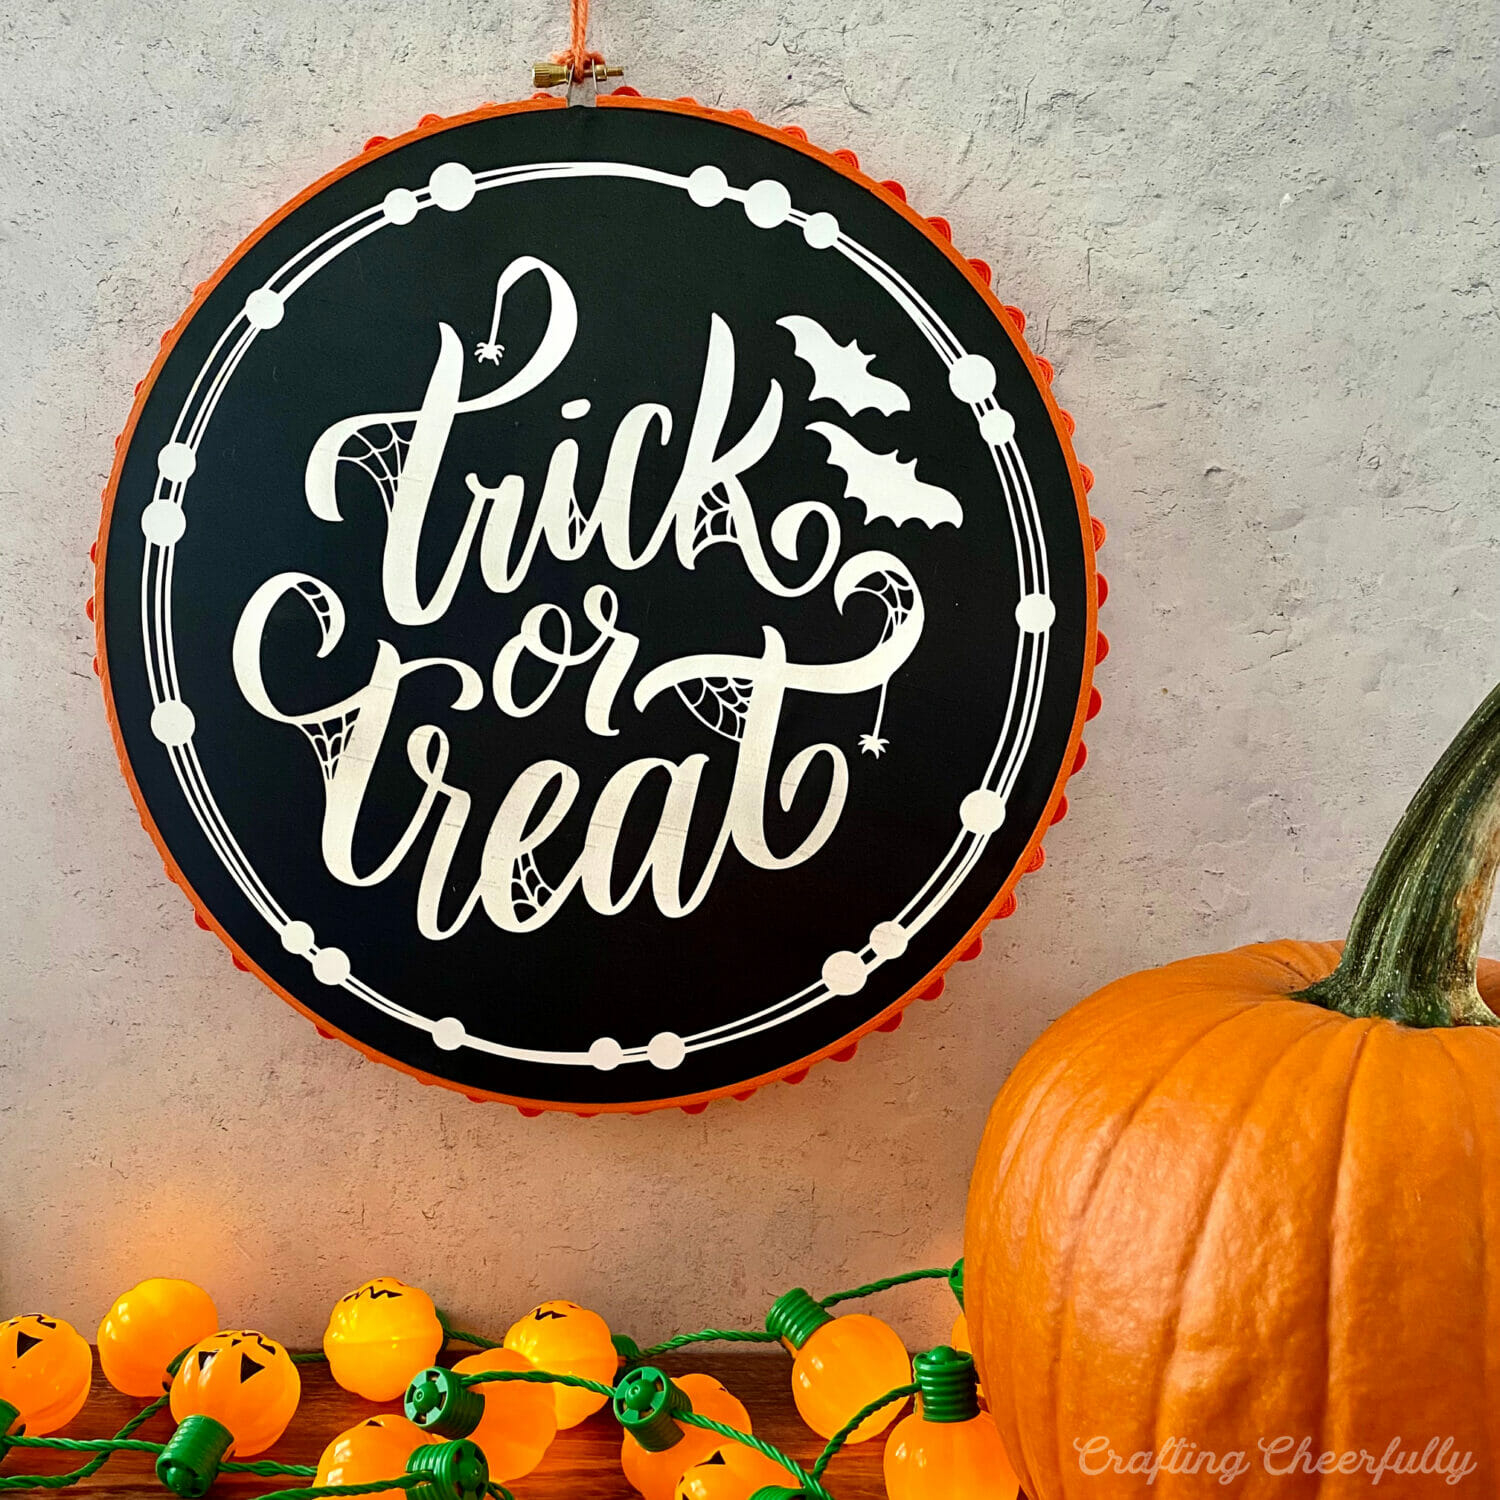 Halloween embroidery hoop hangs on a wall with a pumpkin and pumpkin lights underneath it on a tabletop.